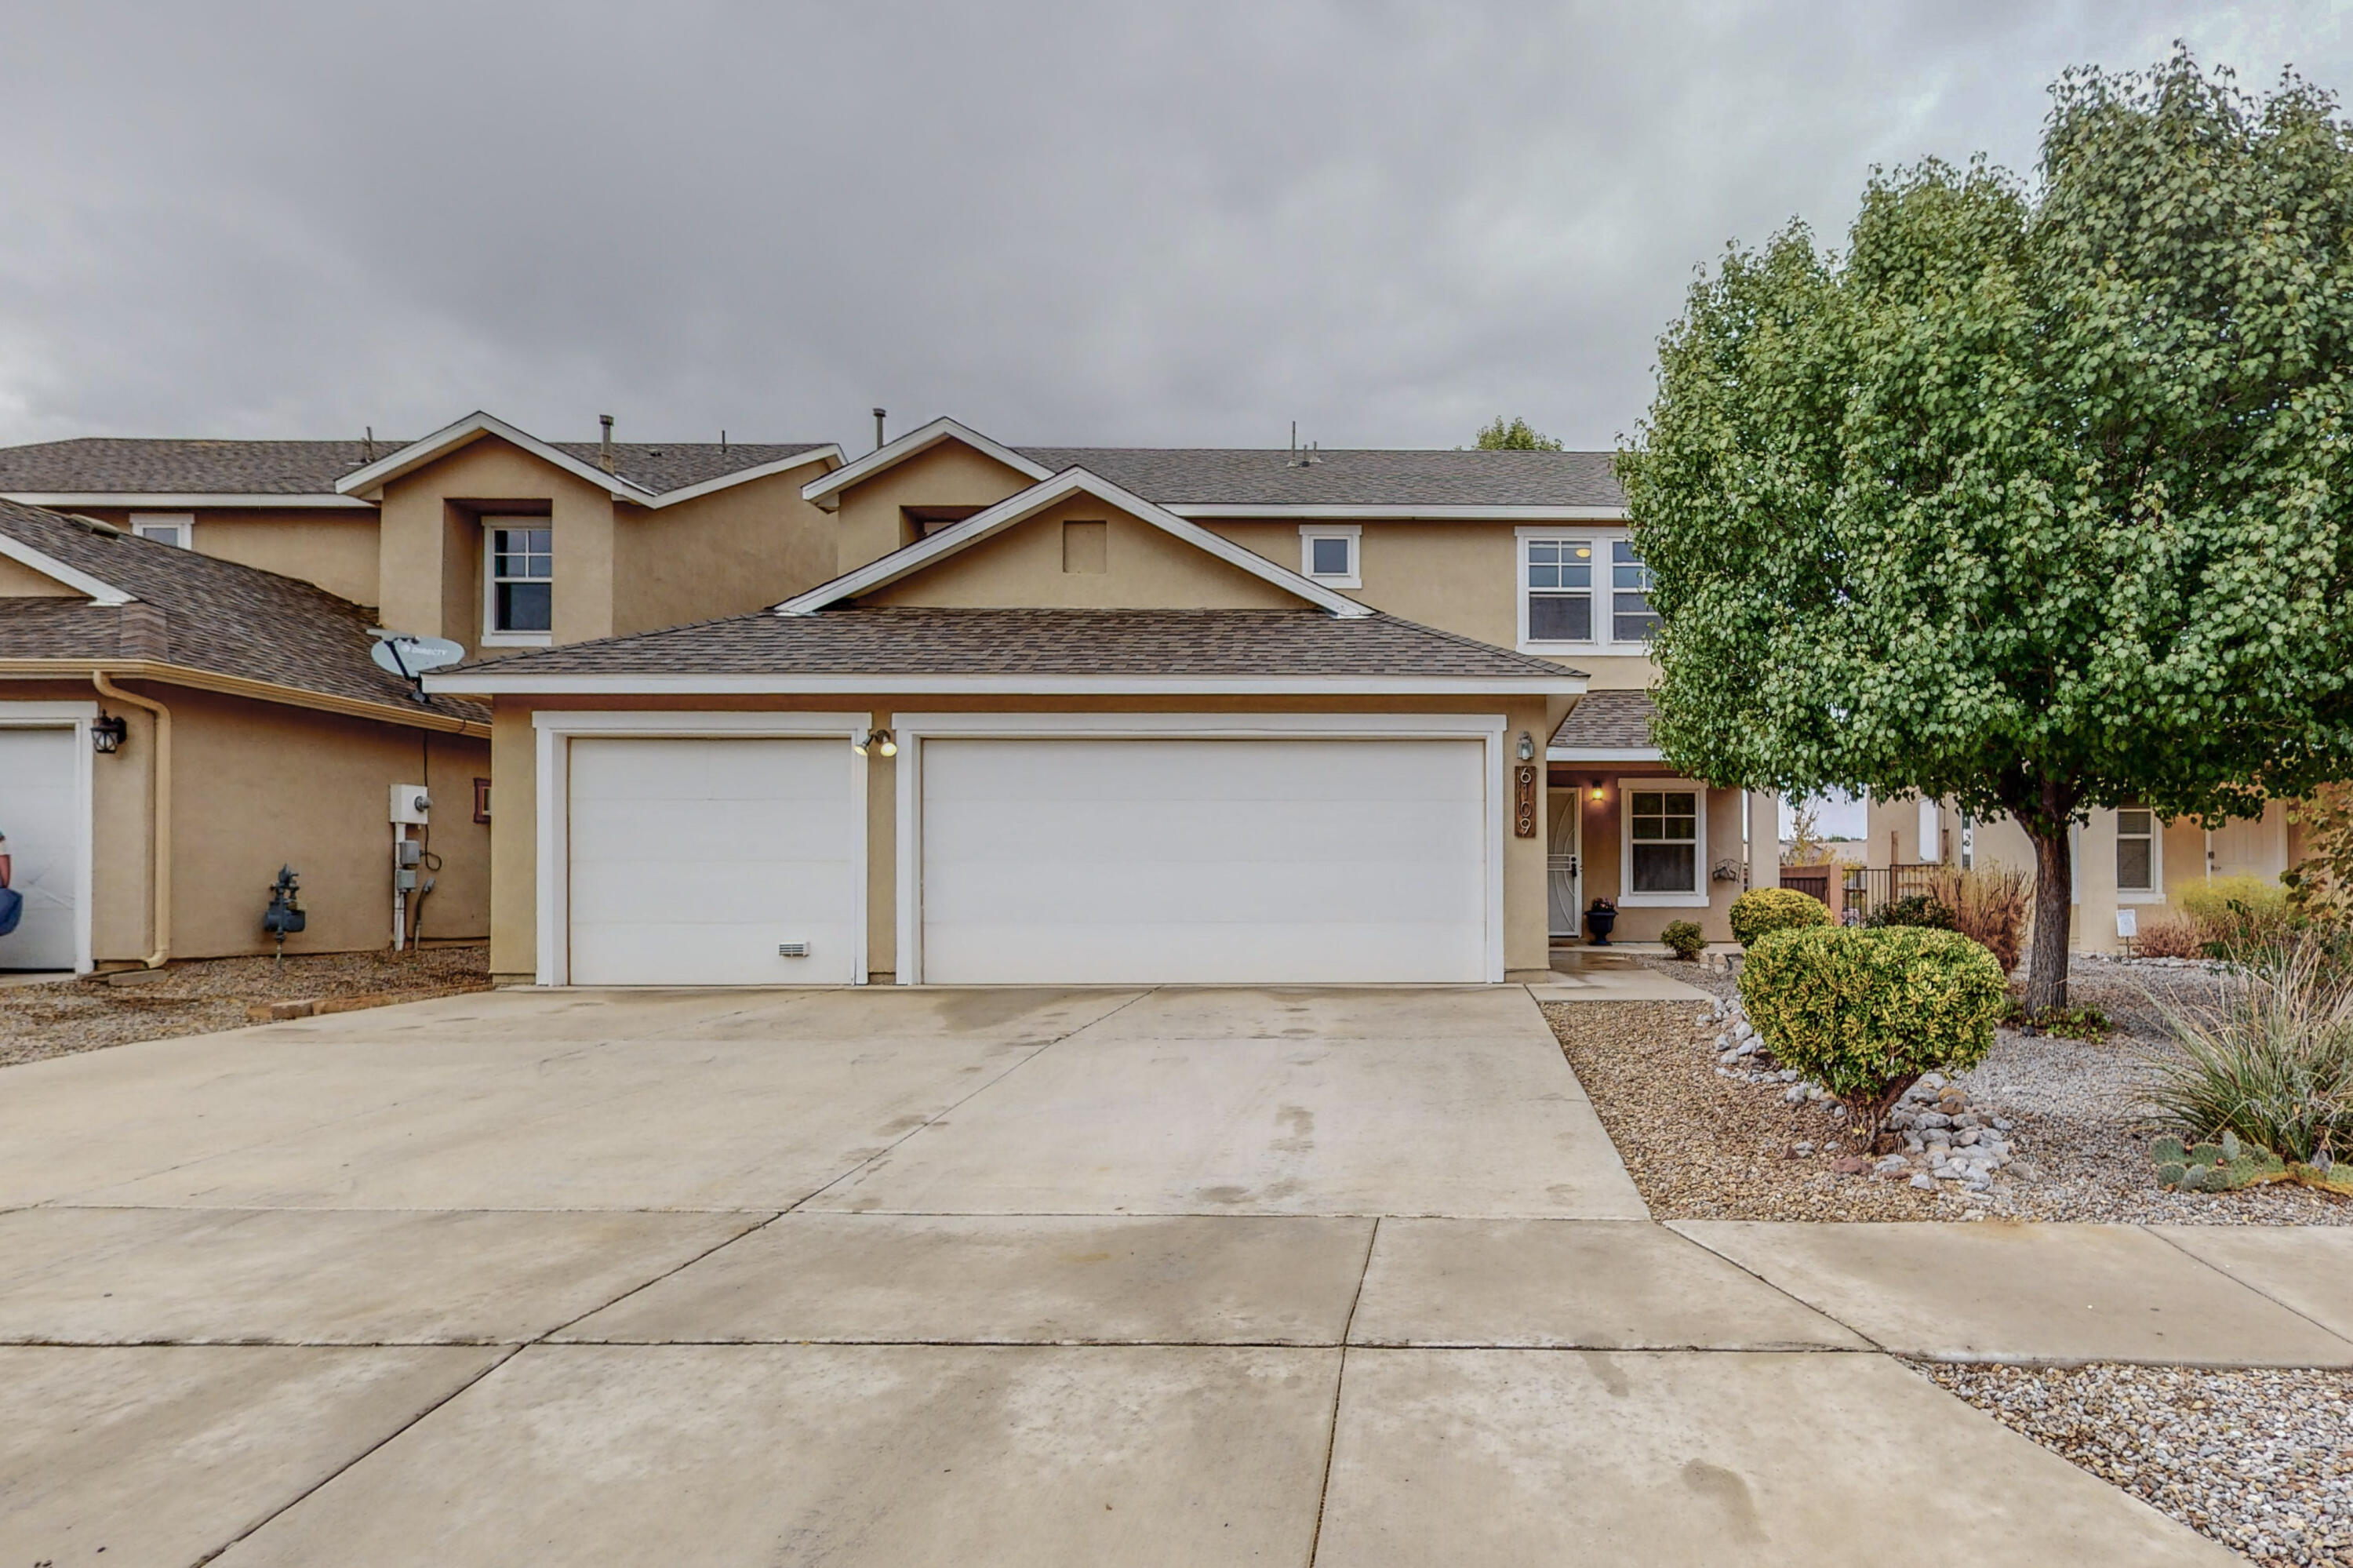 Great new listing in NW Albuquerque.  4 bedrooms, 3 bathrooms.  Downstairs bedroom could work well as an office space.  Main living area with modern built-ins. Large kitchen space perfect for the baker/chef. Stainless steel appliances are included.  The floorplan offers tons of extra living space including large bonus loft upstairs.  3-car garage, single side has been converted into an extra work/hobby space.  It could easily be converted back.  New roof installed in 2019. Refrigerated air.  Backyard has a tiled and covered patio.  There is a garden area with tons of potential backing to open space.